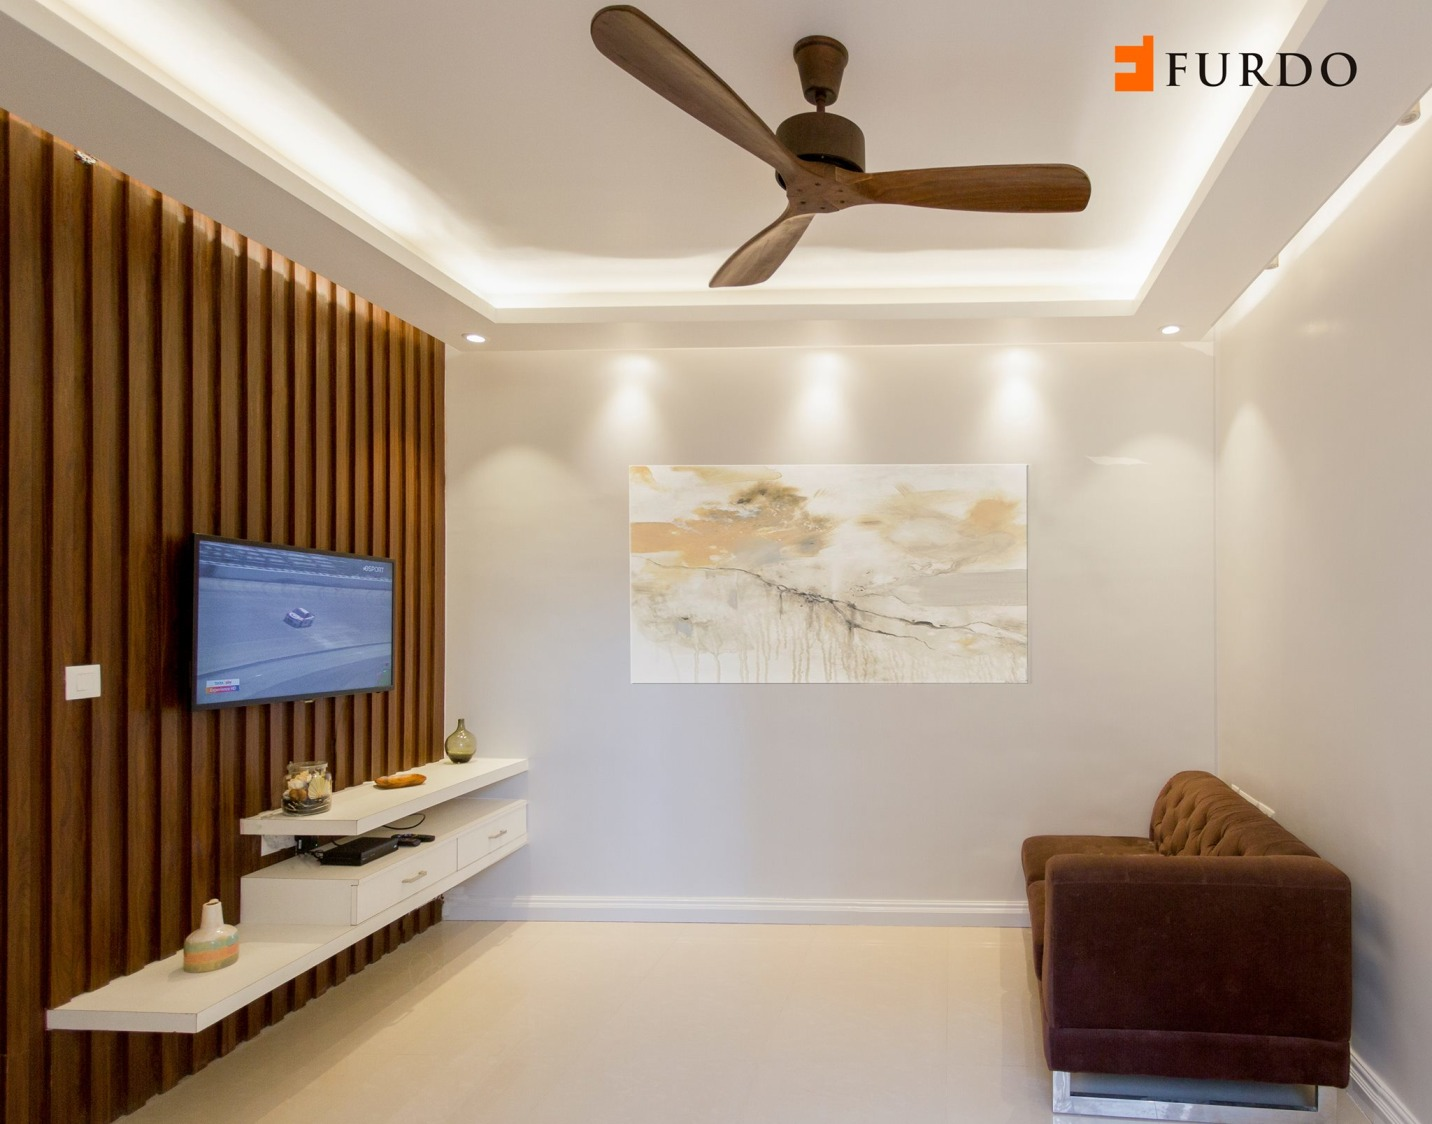 Living Room With Wooden Furnishing by Furdo.com Living-room Minimalistic | Interior Design Photos & Ideas